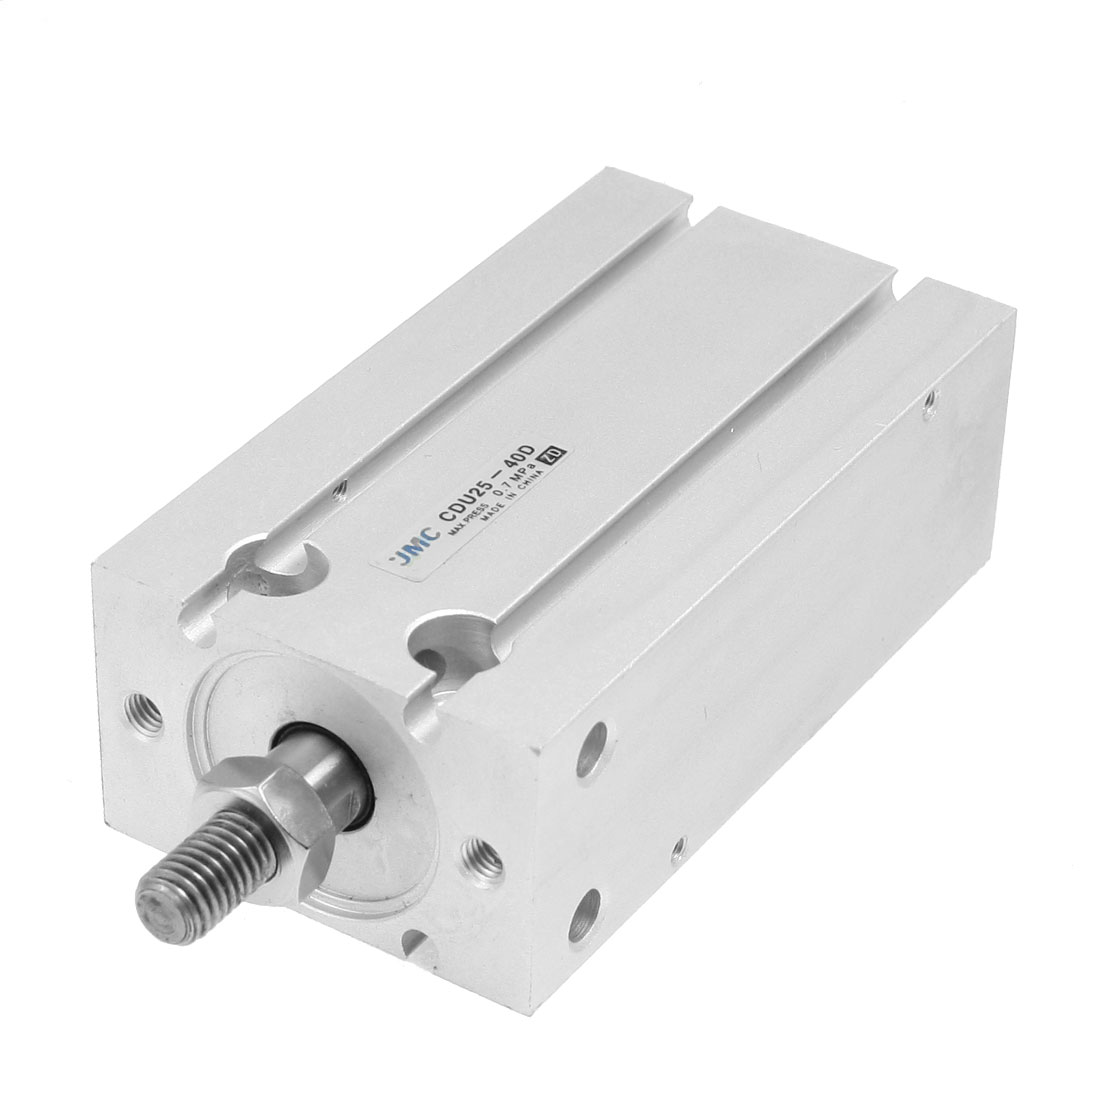 CDU 25-40 Single Rod Double Acting Pneumatic Air Cylinder